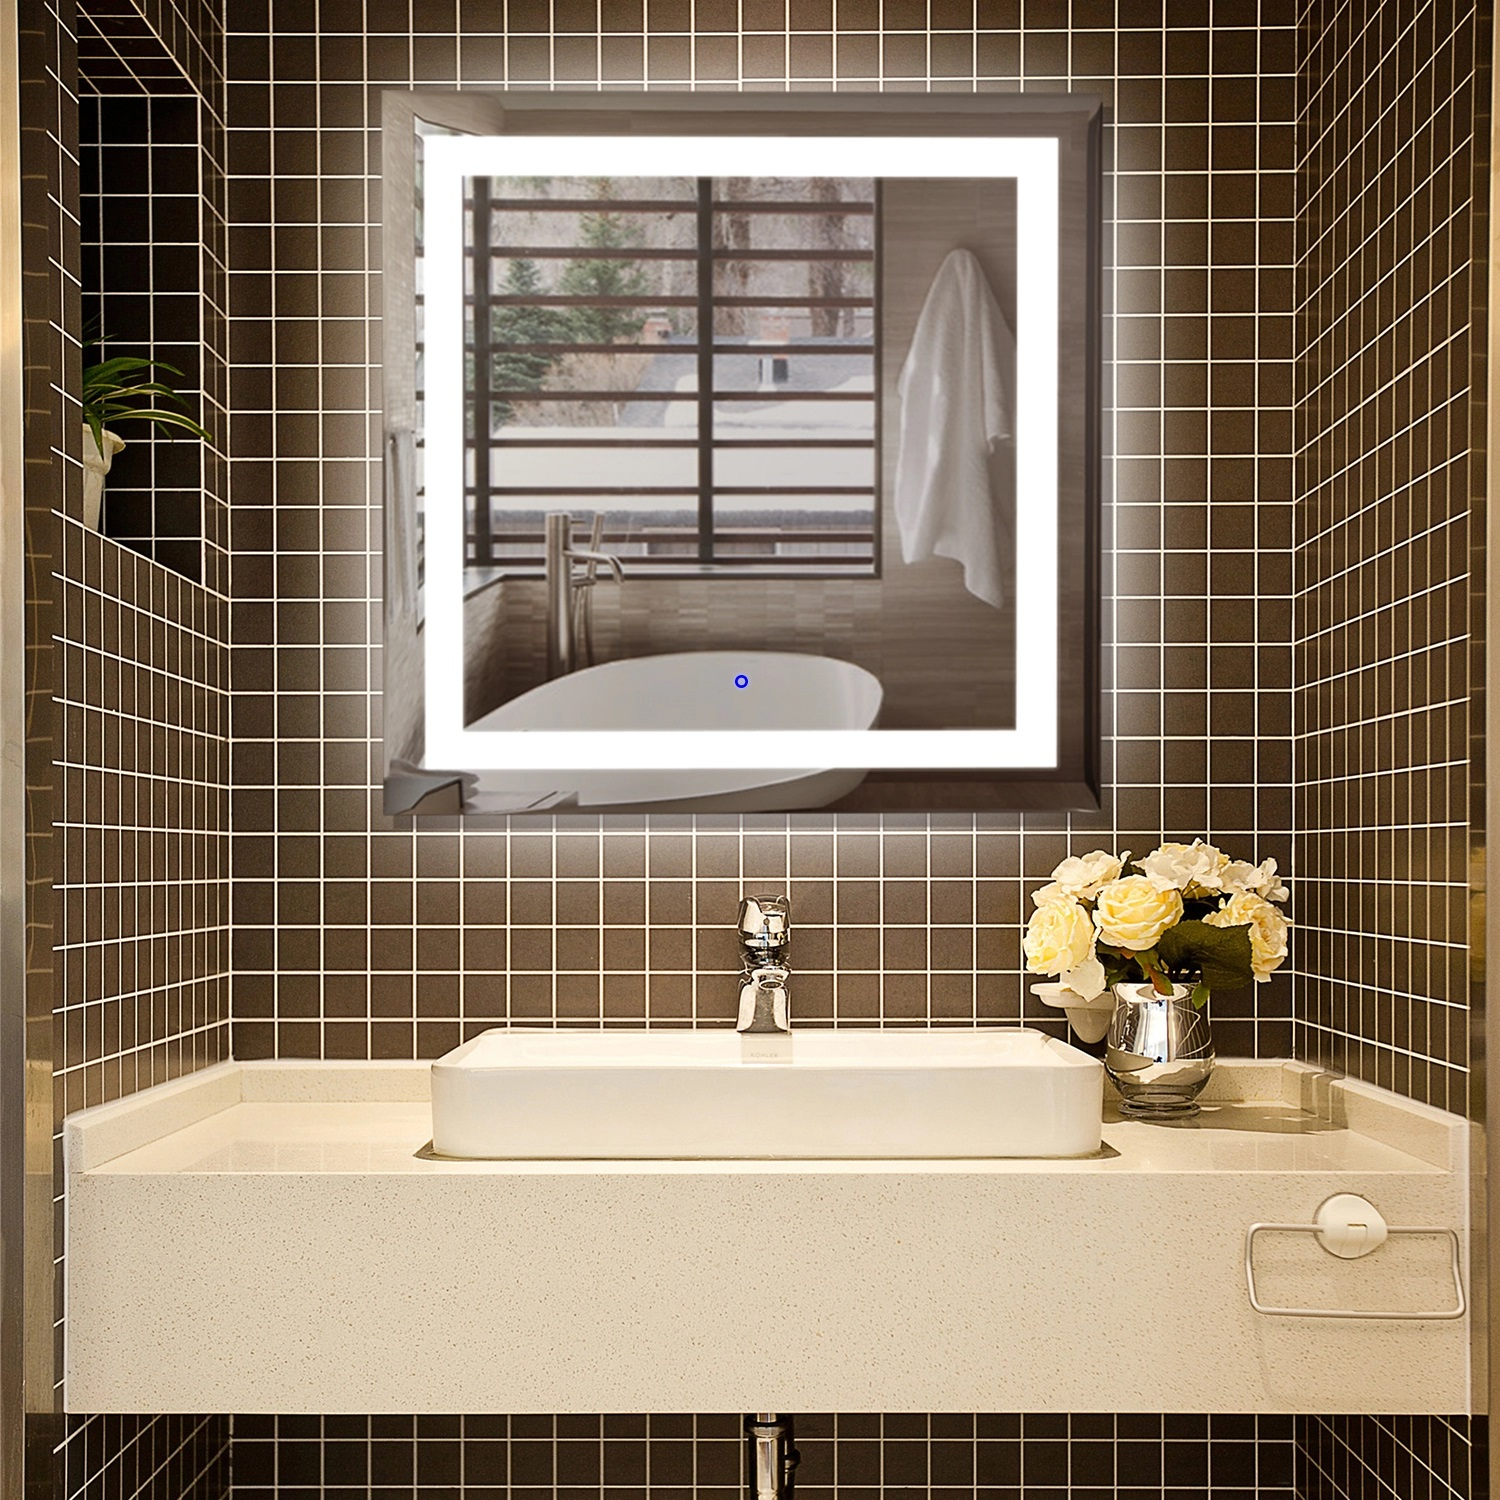 New Design Decorative Mirror Rectangle LED Wall Mirror for Bathroom 8